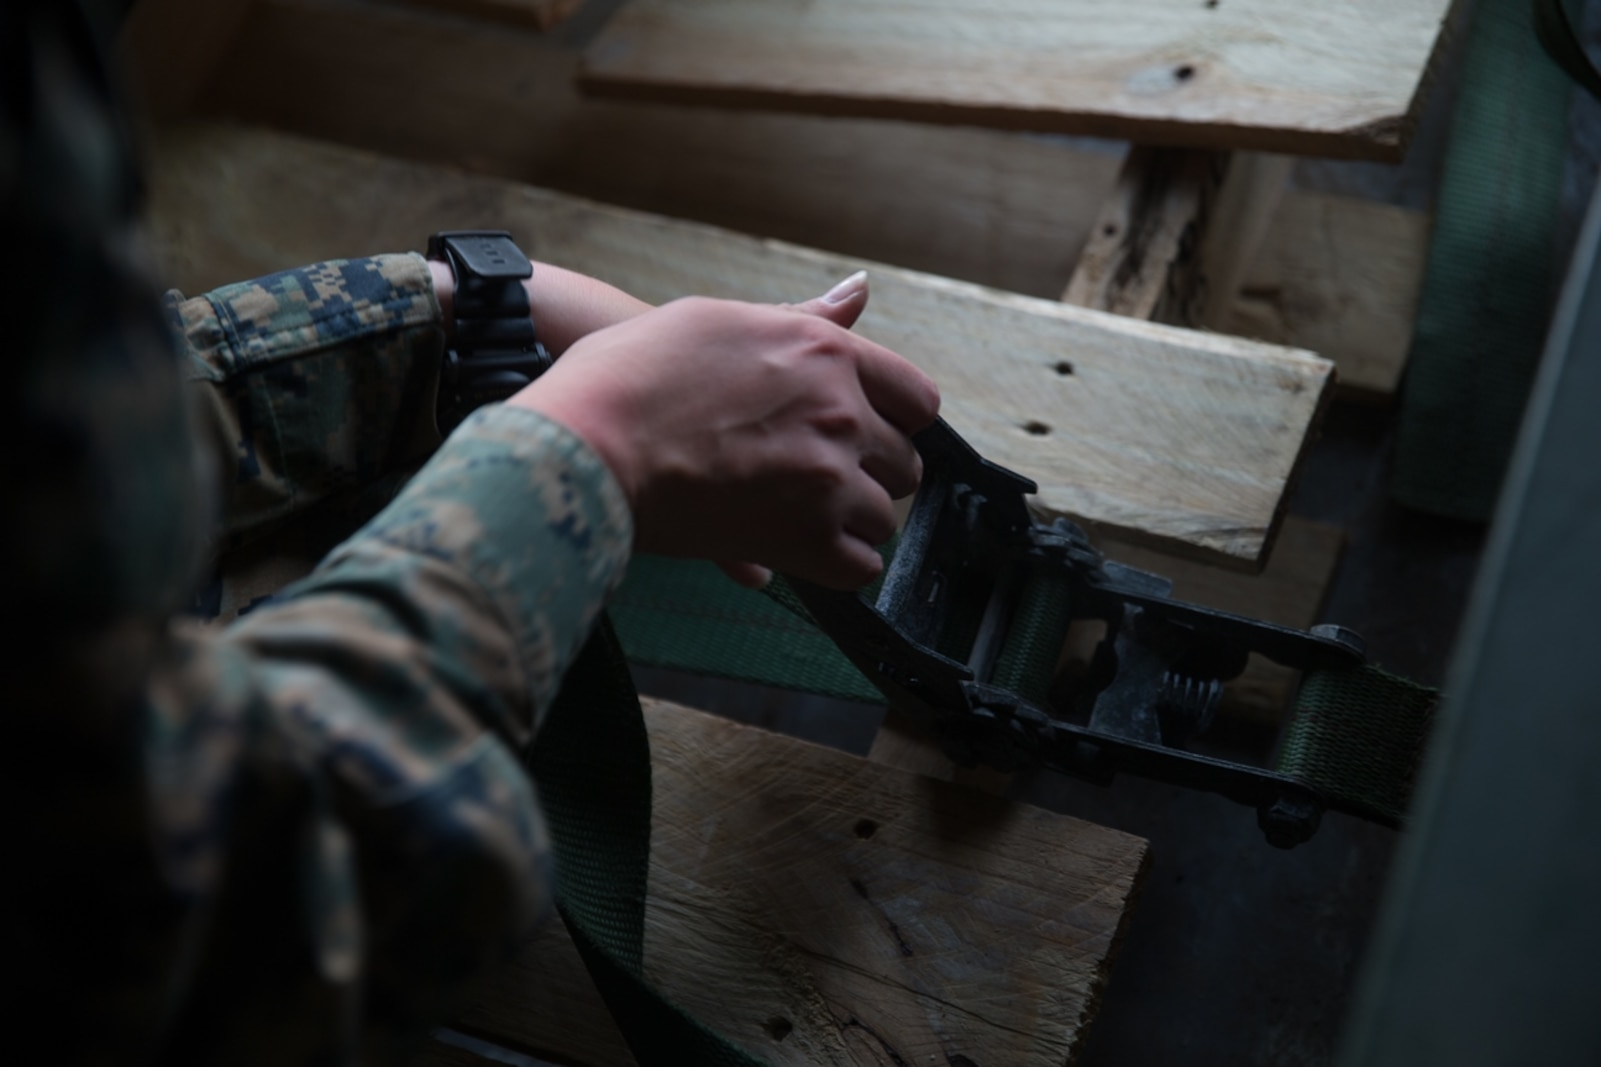 U.S. Marine Pfc. Olivia Rutherford, an ammunition technician with Combat Logistics Battalion 5, Combat Logistics Regiment 1, 1st Marine Logistics Group, uses a strap to tie down ammunition during Mountain Training Exercise 4-17 at Marine Corps Mountain Warfare Training Center, August 3, 2017. An ammo technician works in every aspect of the ammunition field, including receipt, storage, issue, and handling of ammunition and toxic chemicals. (U.S. Marine Corps photo by Lance Cpl. Timothy Shoemaker)